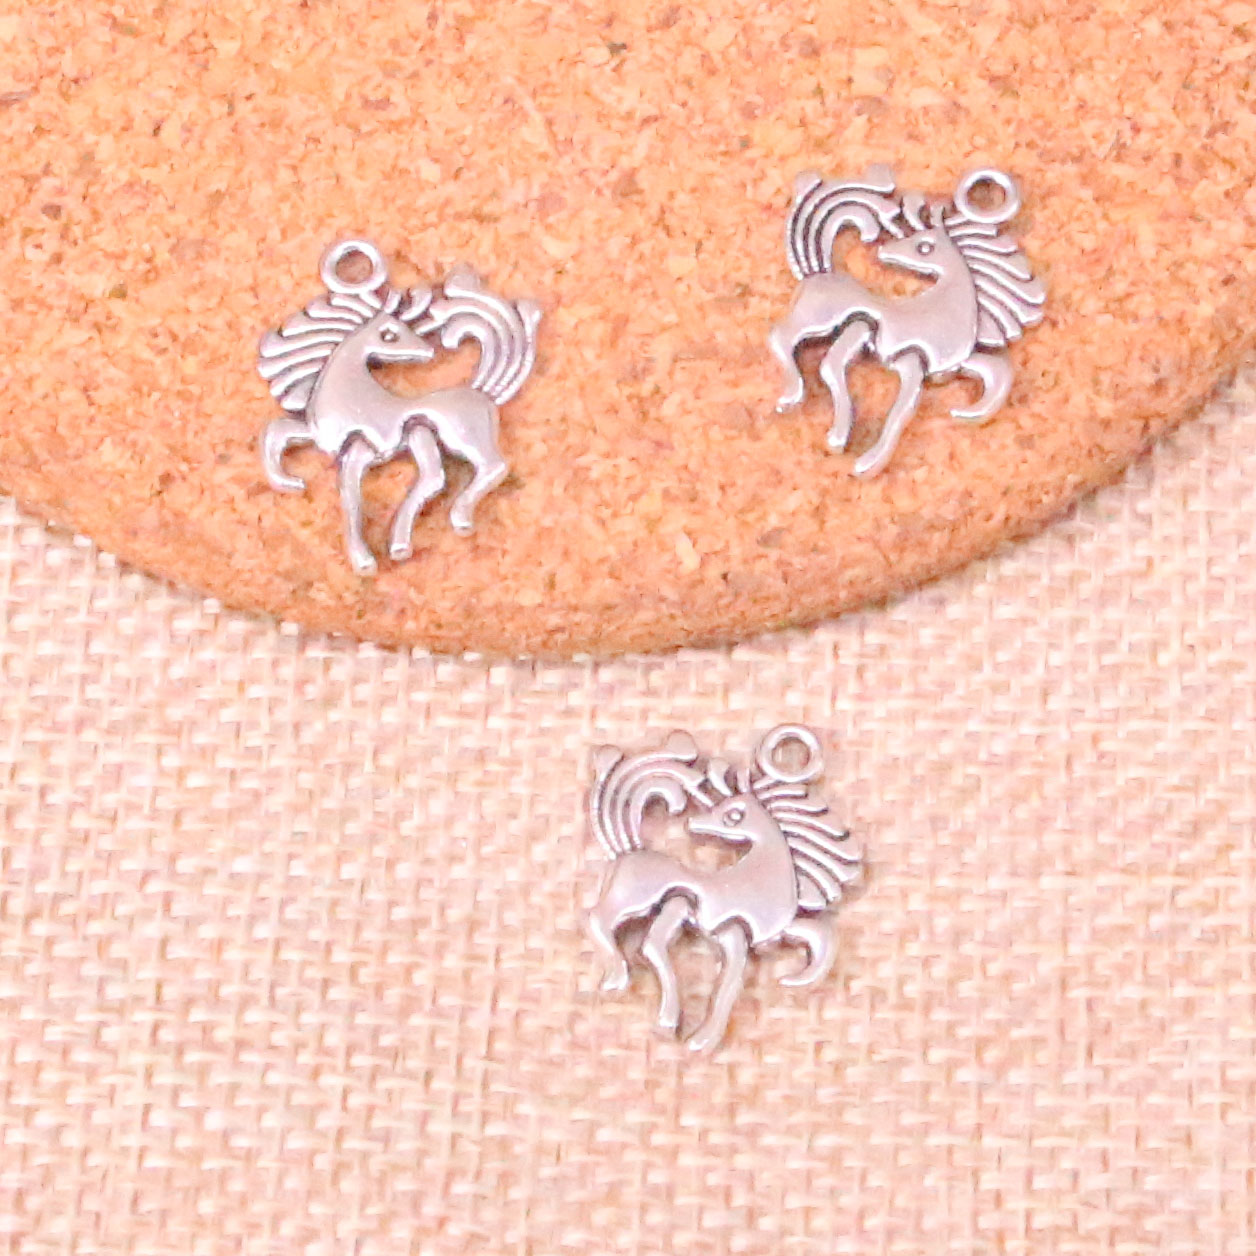 25pcs Tibetan Silver Plated Horse Unicorn Charms Pendants For Jewelry Making Diy Handmade Craft 19*25mm At Any Cost